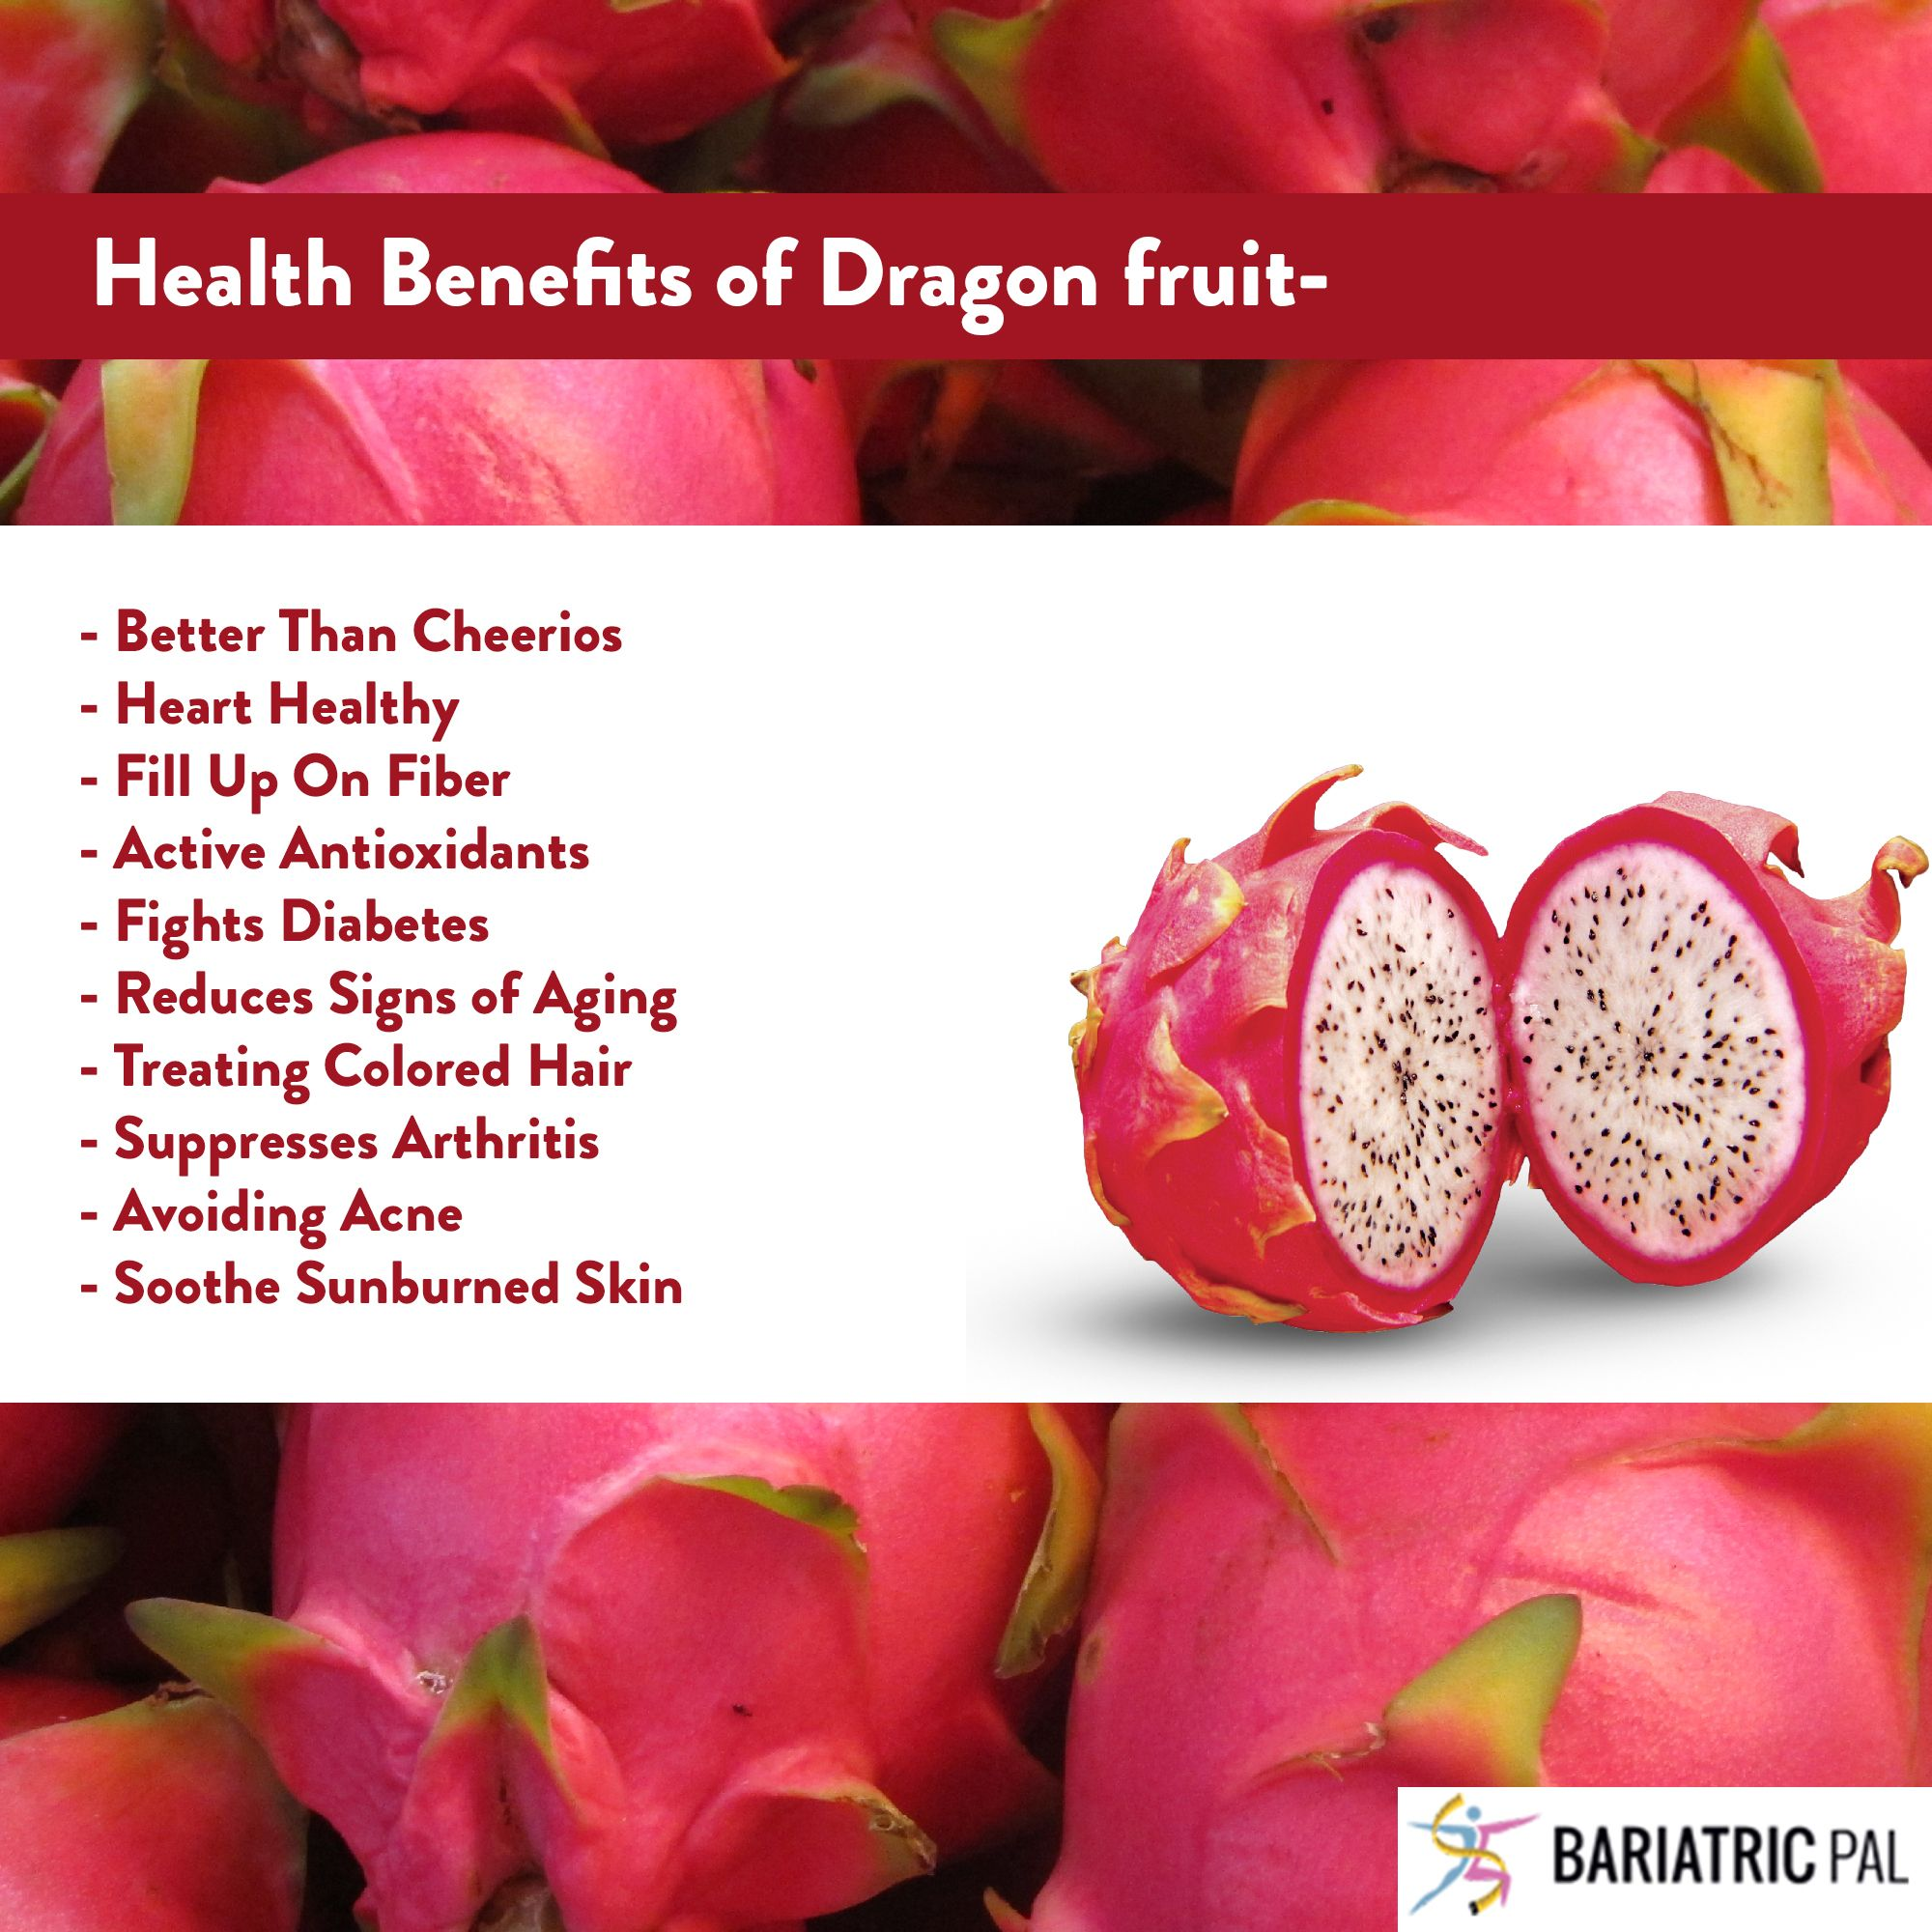 health benefits of dragon fruit:#wls #healthyfruit